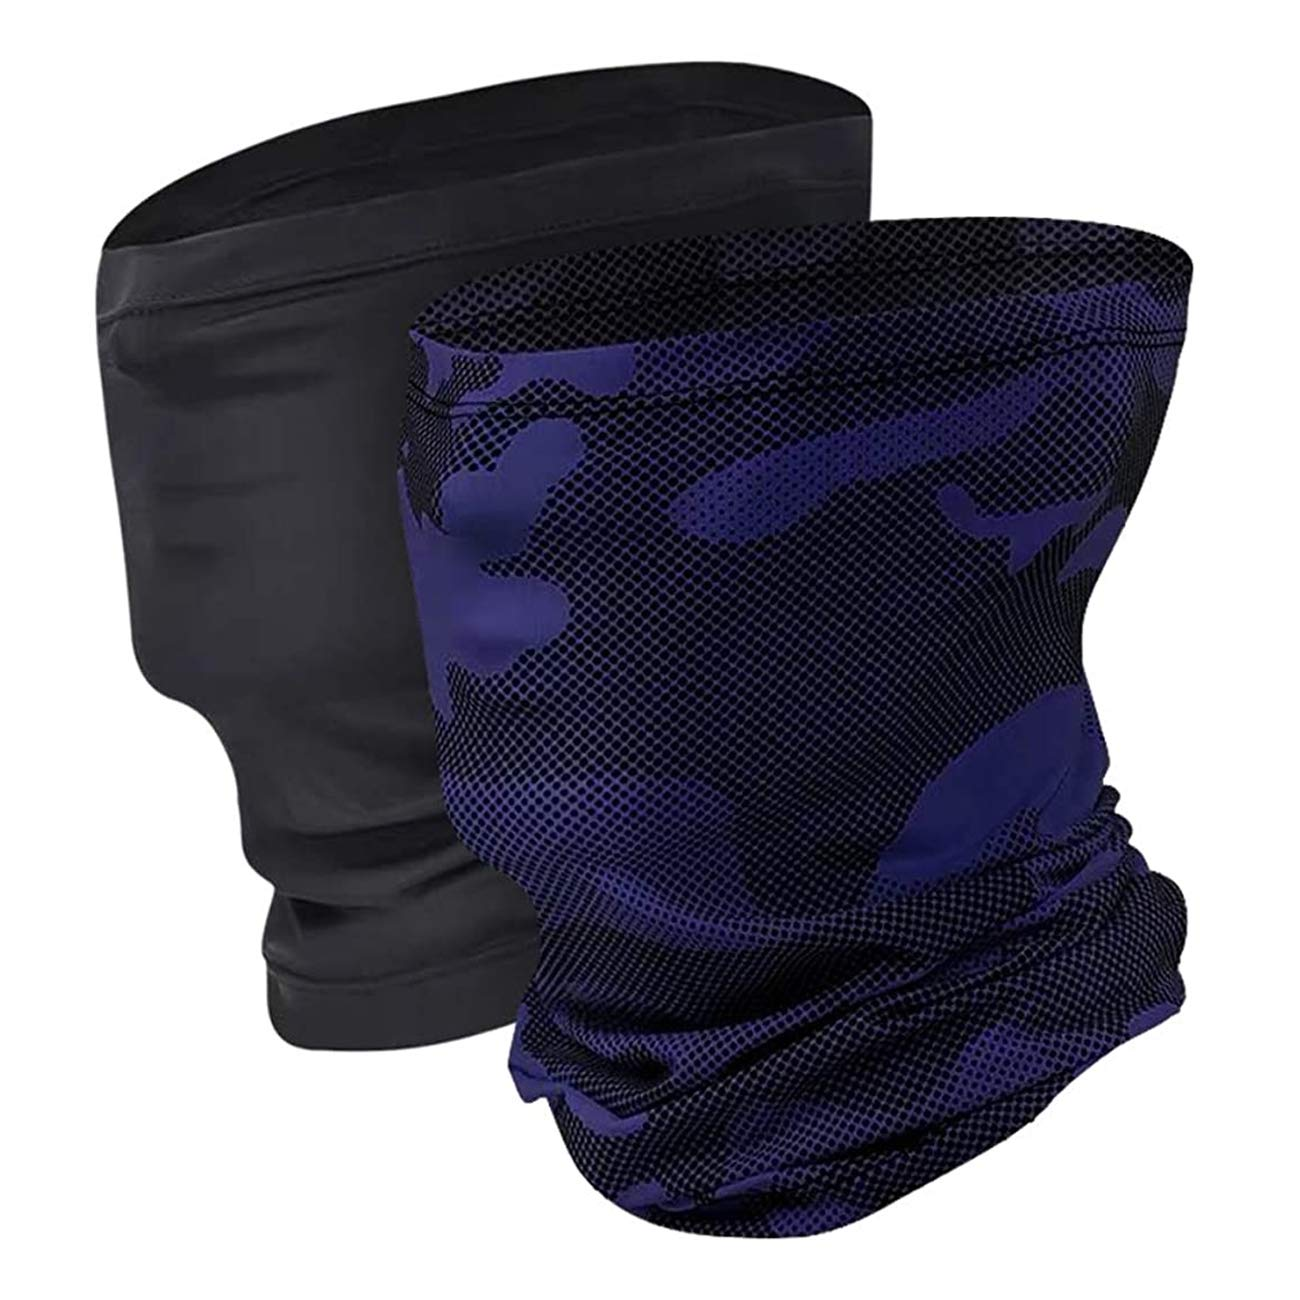 Neck Gaiter Non Slip Face Scarf Ultra Breathable Balaclava for Wind Sun UV and Dust Protection,Hiking Running Cycling